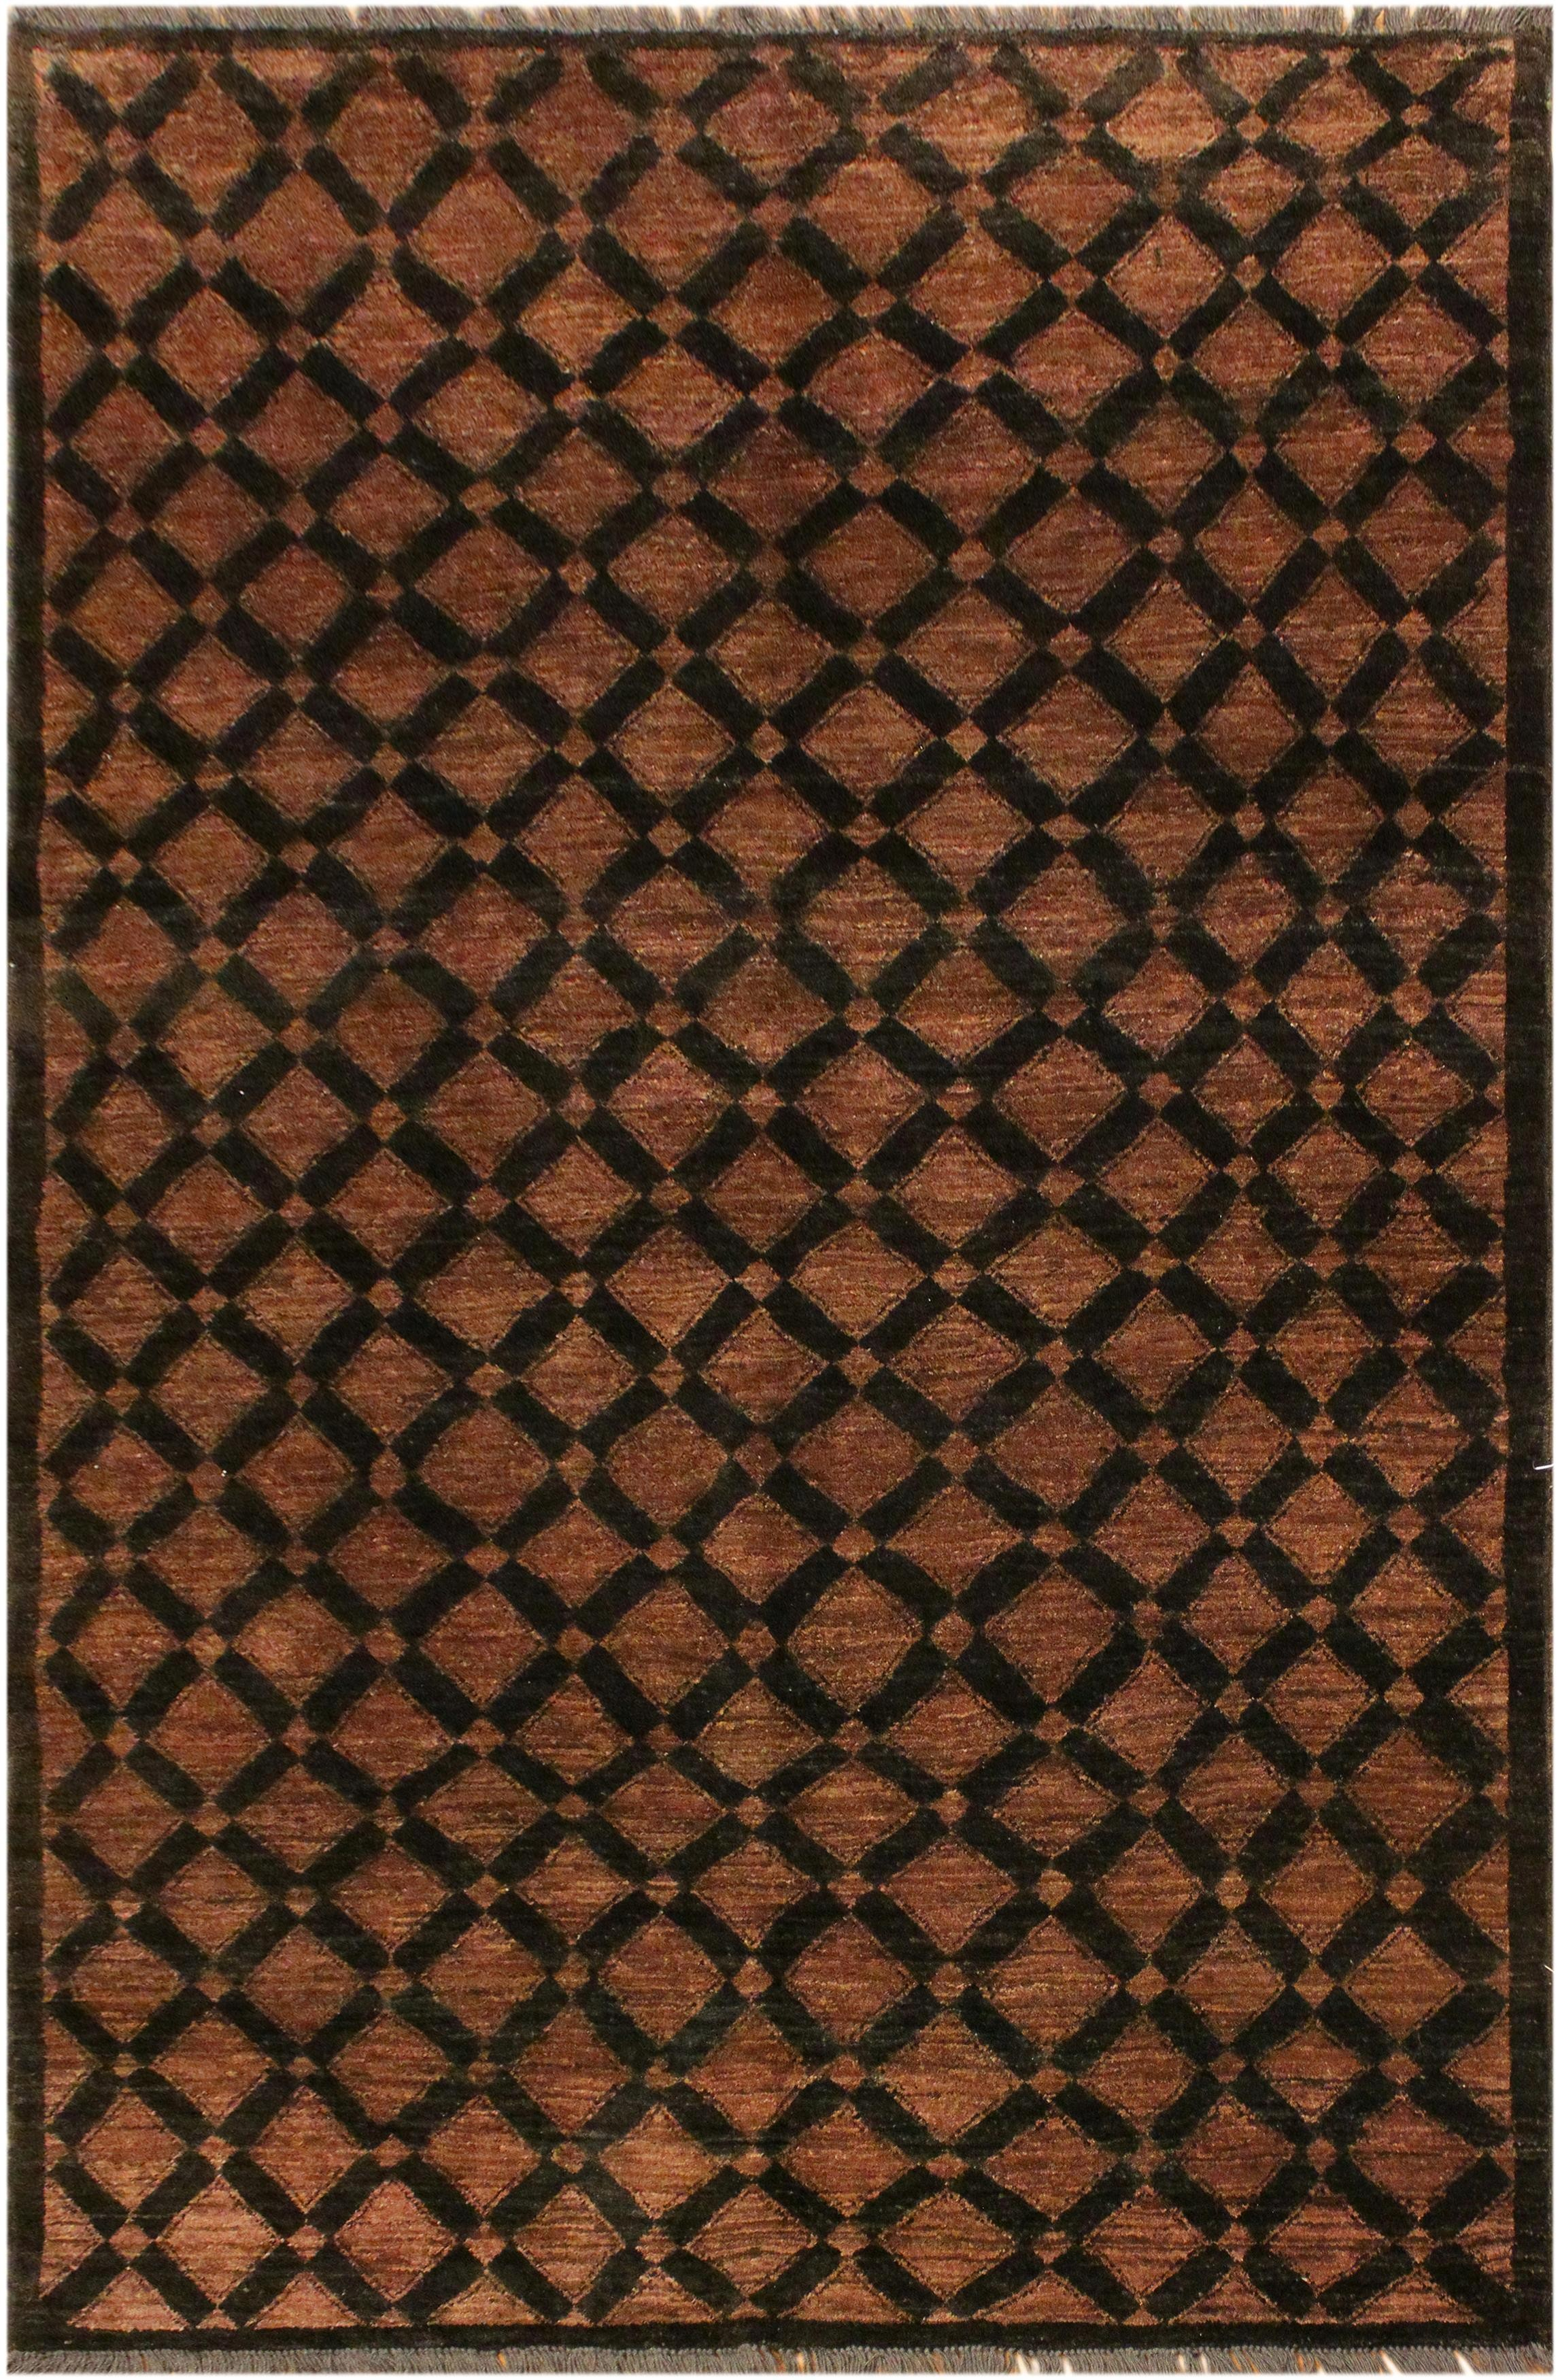 Arshs Fine Rugs Gabbeh Brenna Black/Brown Wool Area Rug